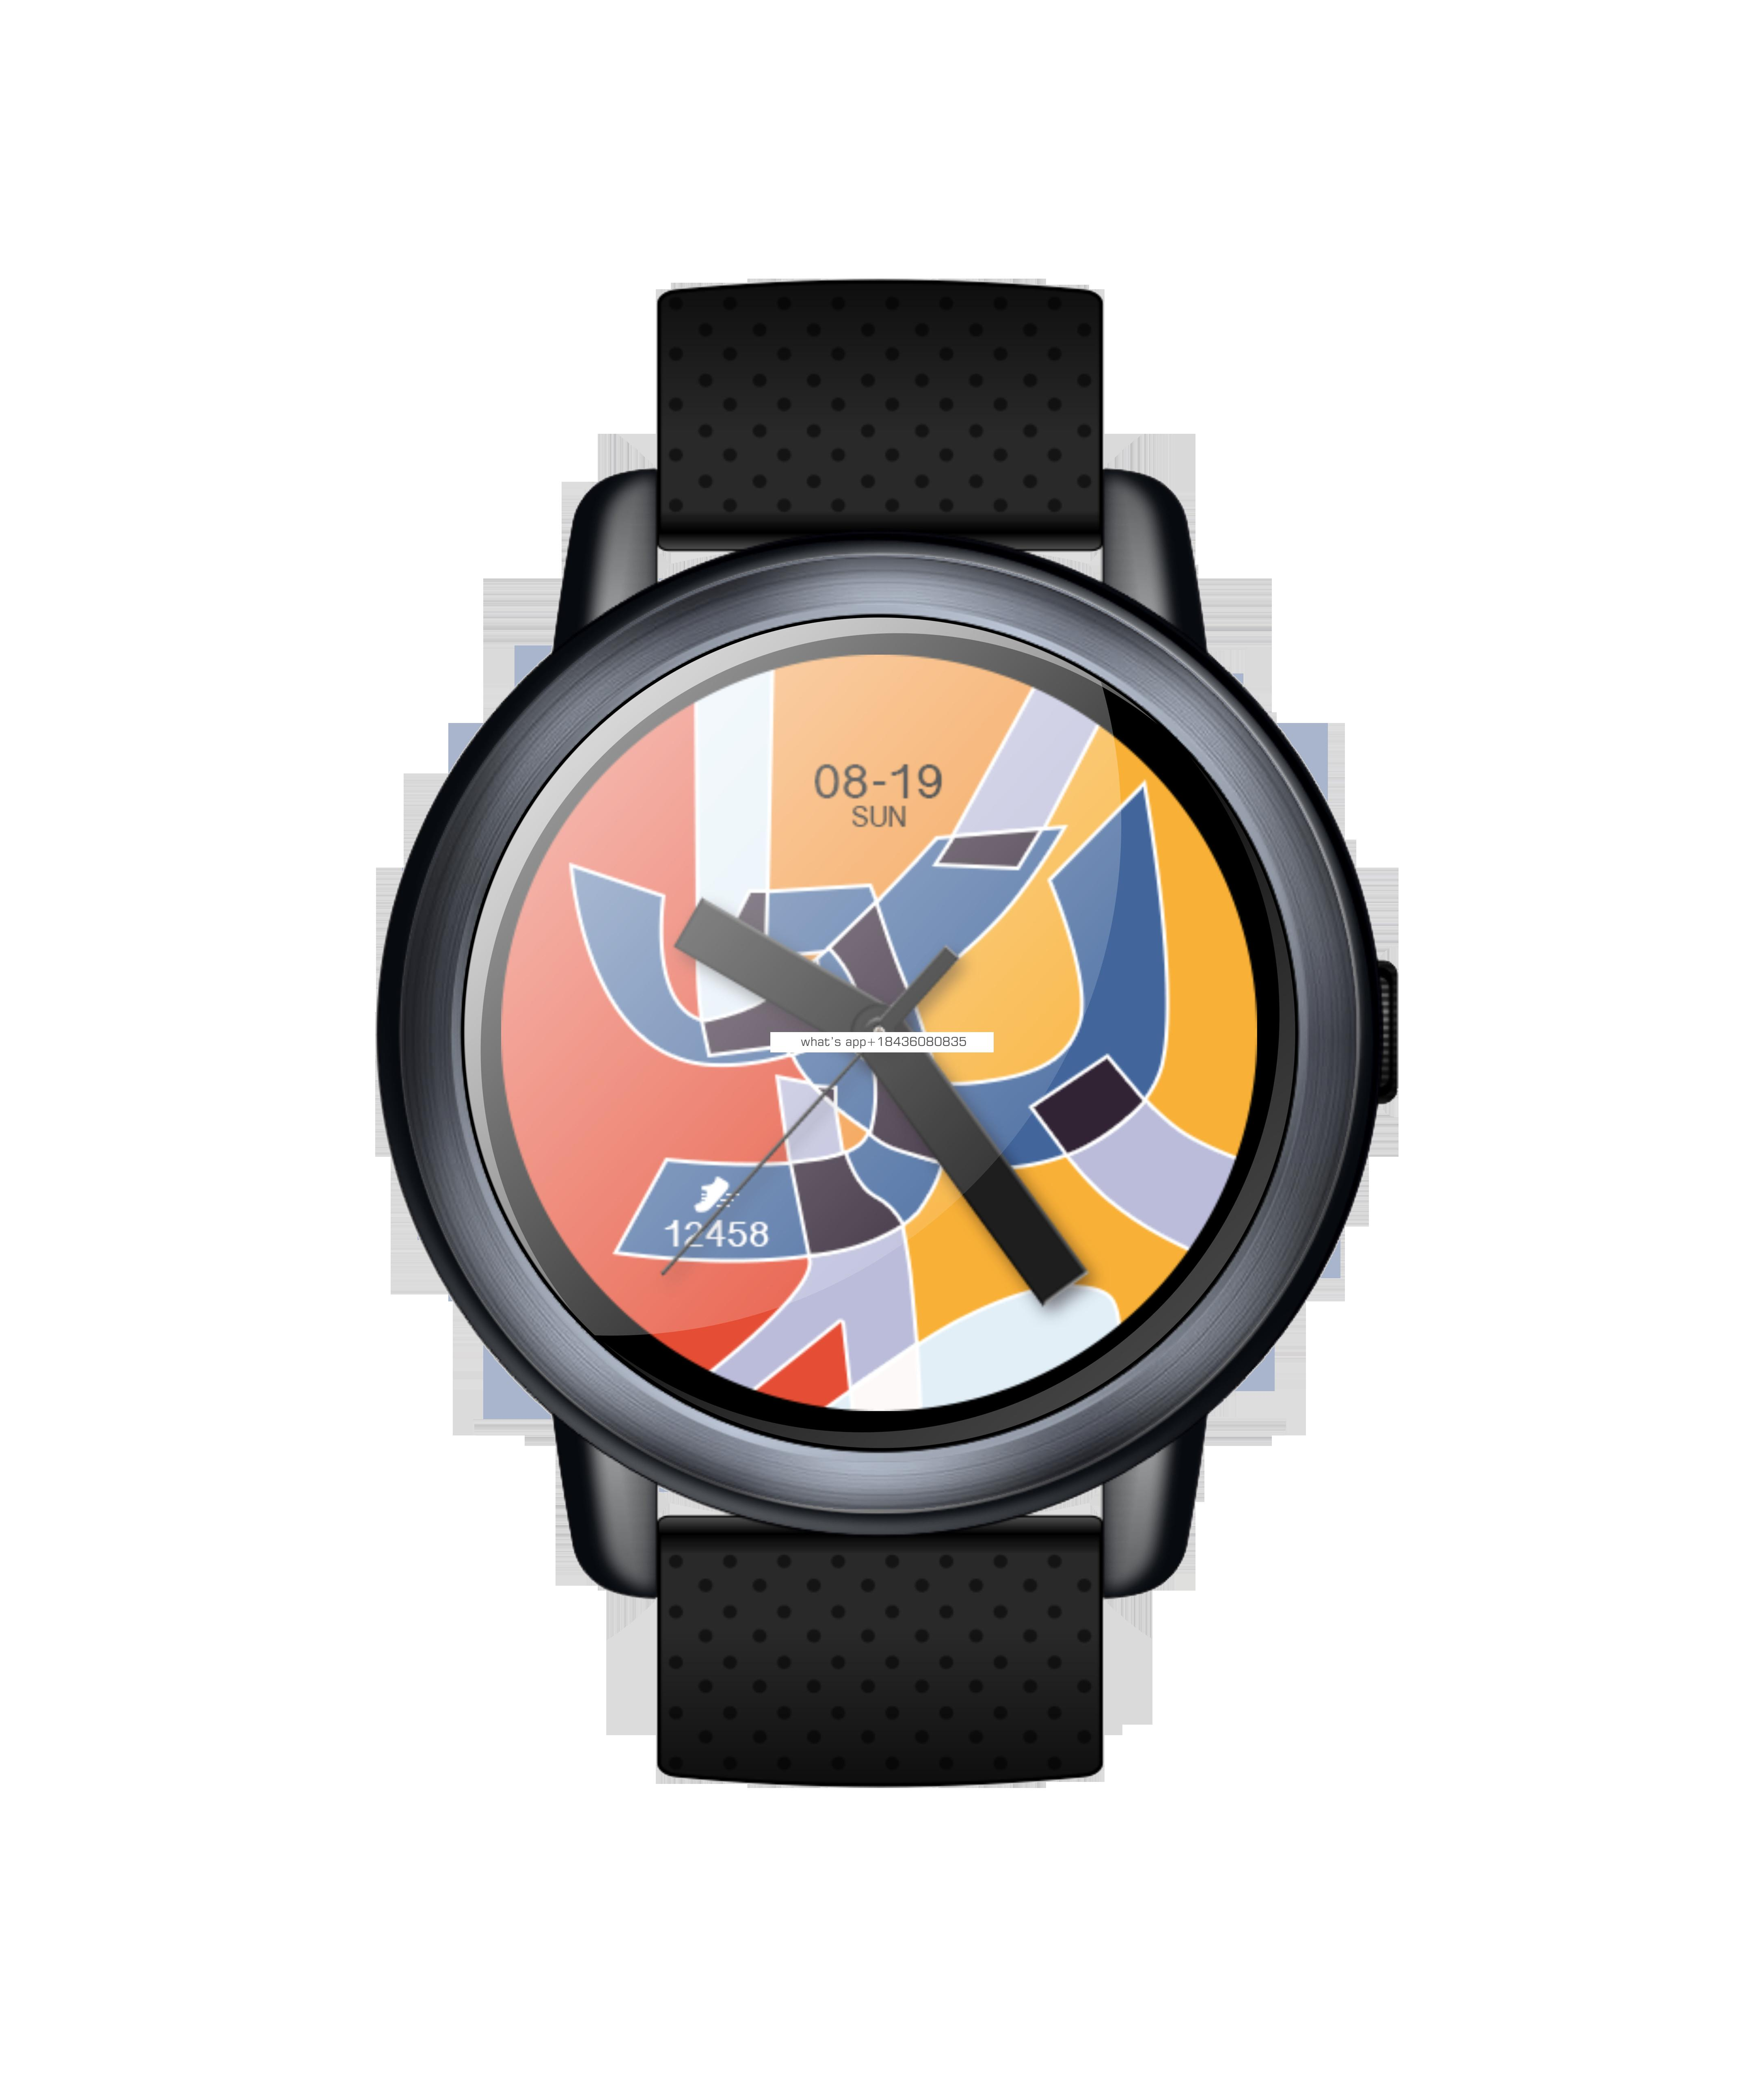 2019 New  men  mobile watch Waterproof Heart Rate WIFI  Sport 4g android Smartwatch  4G  high quality